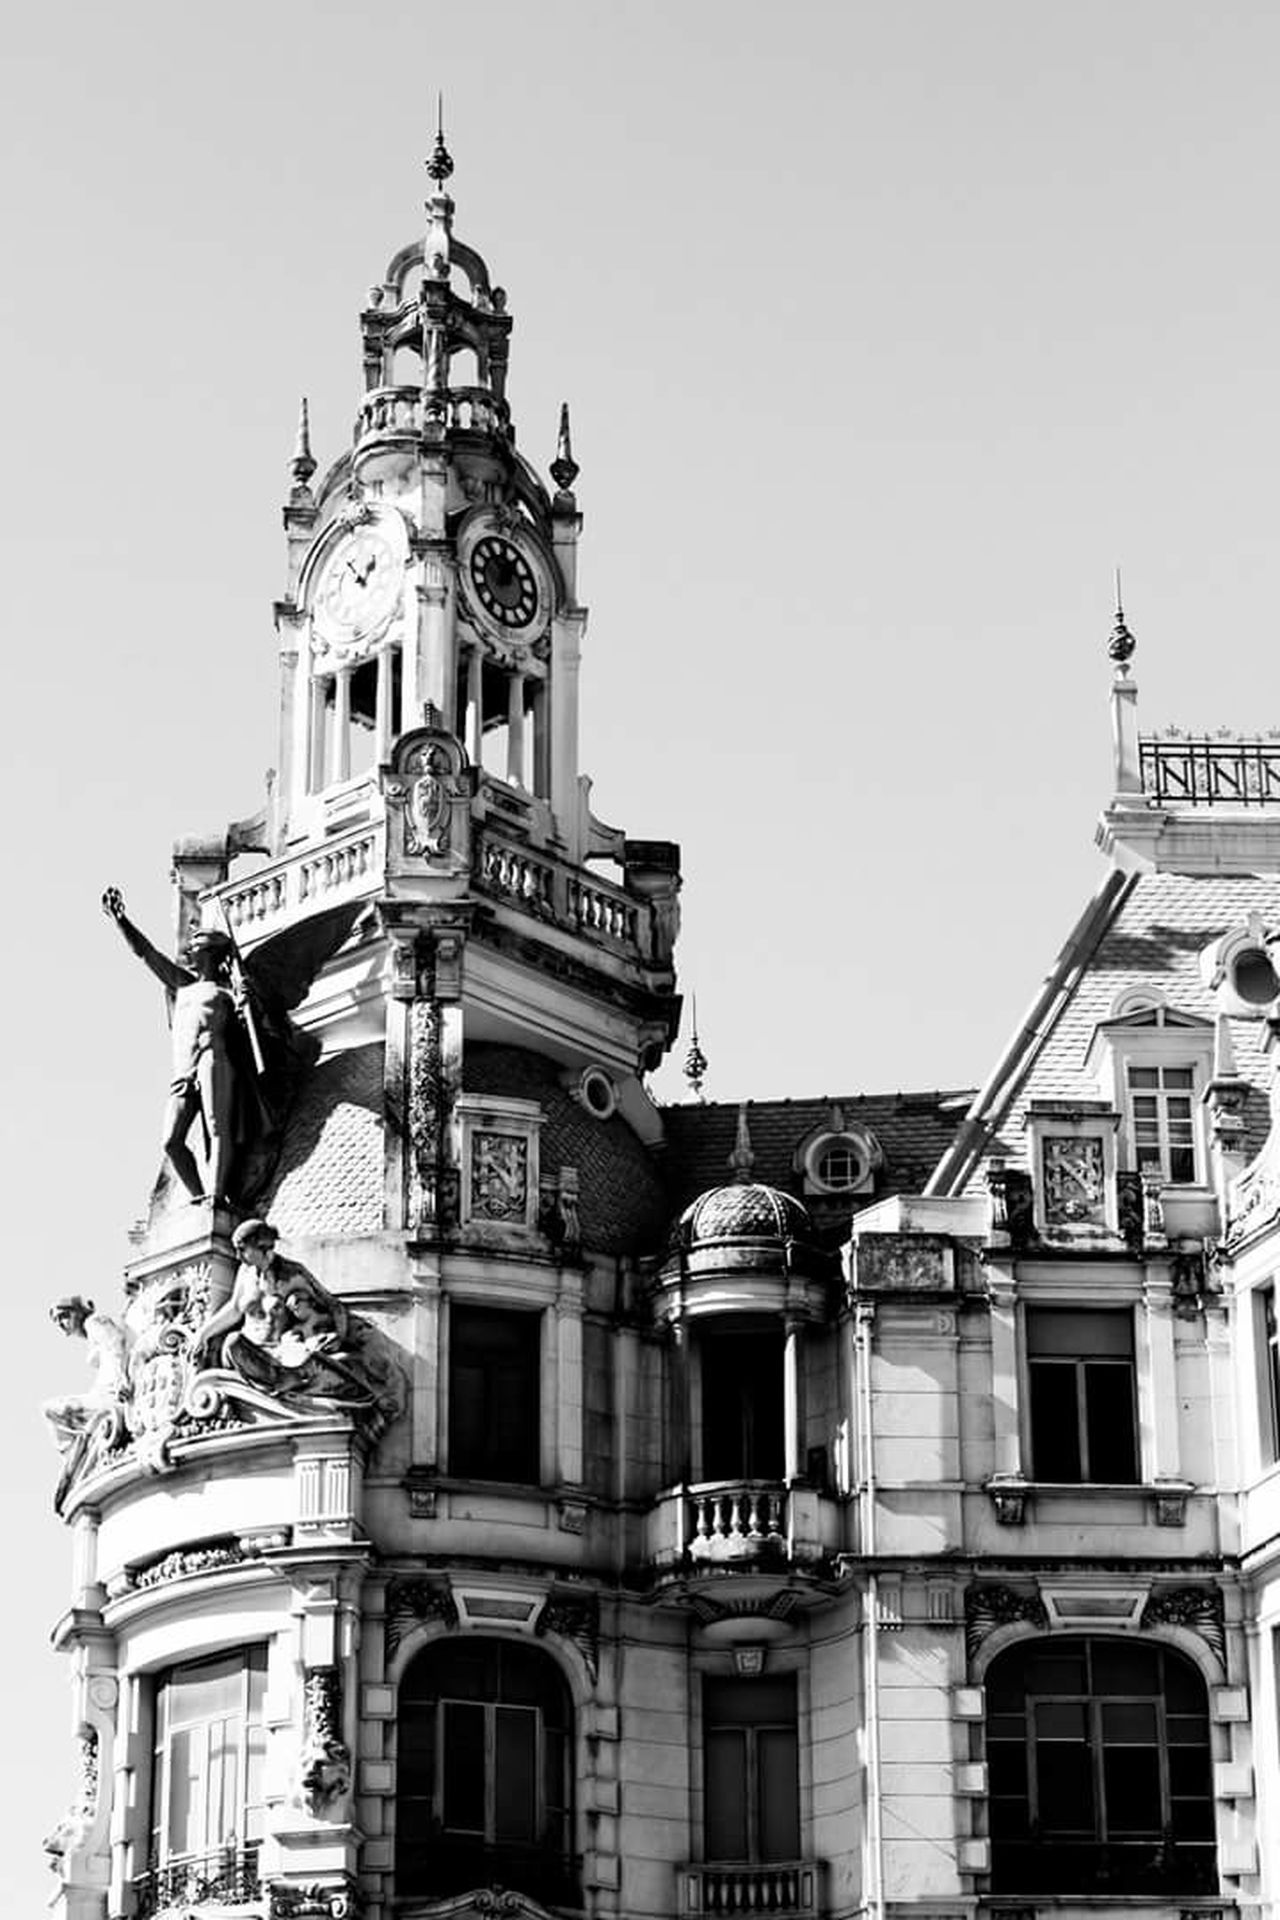 Clock Travel Destinations Oporto, Portugal Building Exterior Clock Tower City Architecture The City Light Streetphotography Street Photography Blackandwhite Photography Black And White Blackandwhite High Contrast Bnw Black & White High Contrast Urban Perspectives Architecture Close-up